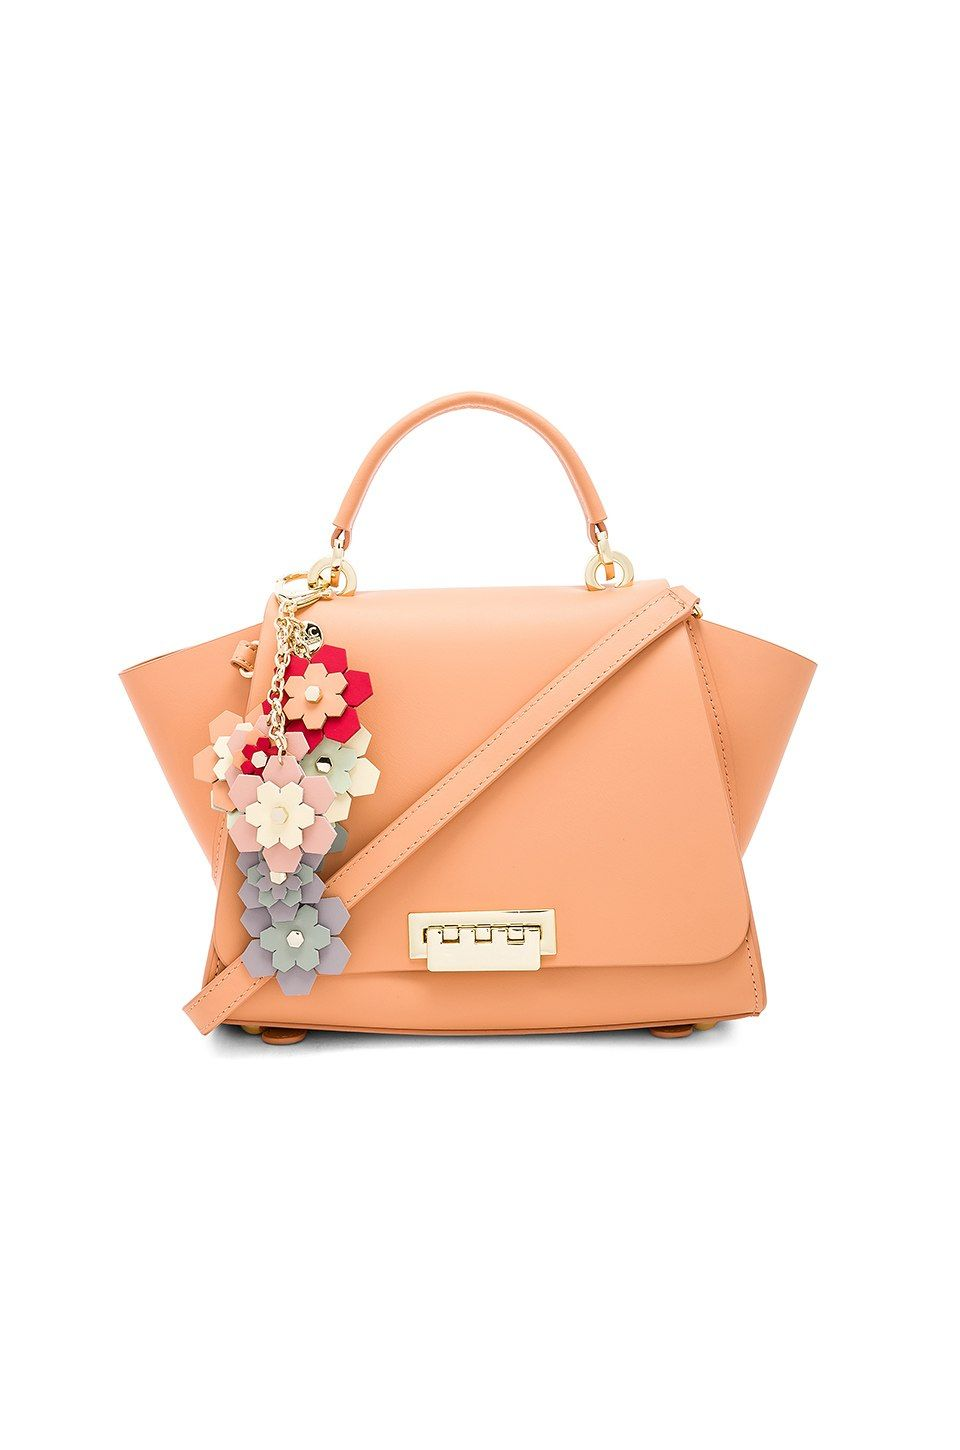 Zac Zac Posen Eartha Iconic Convertible Backpack Bag In Coral